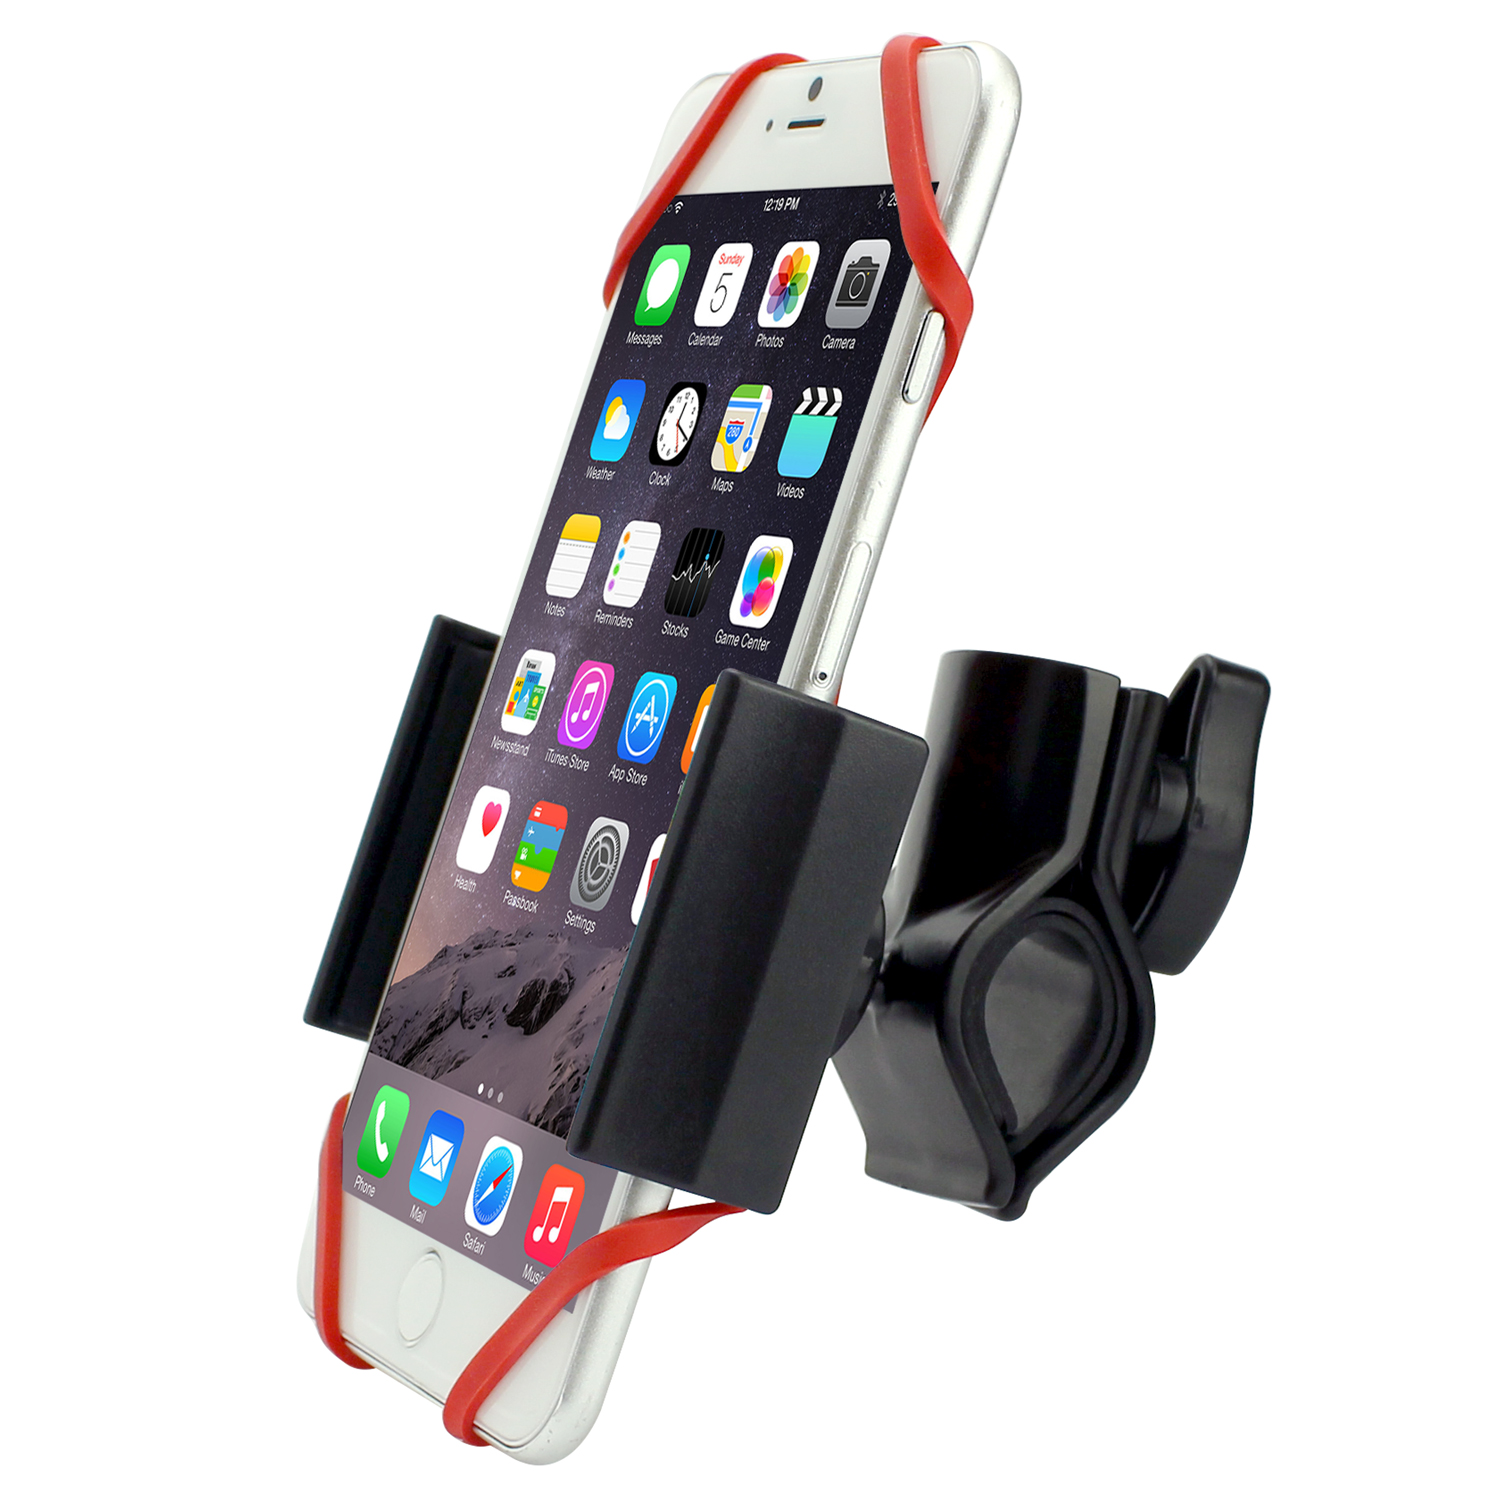 Asus ZenFone 2E Bike Phone Mount Adjustable Black